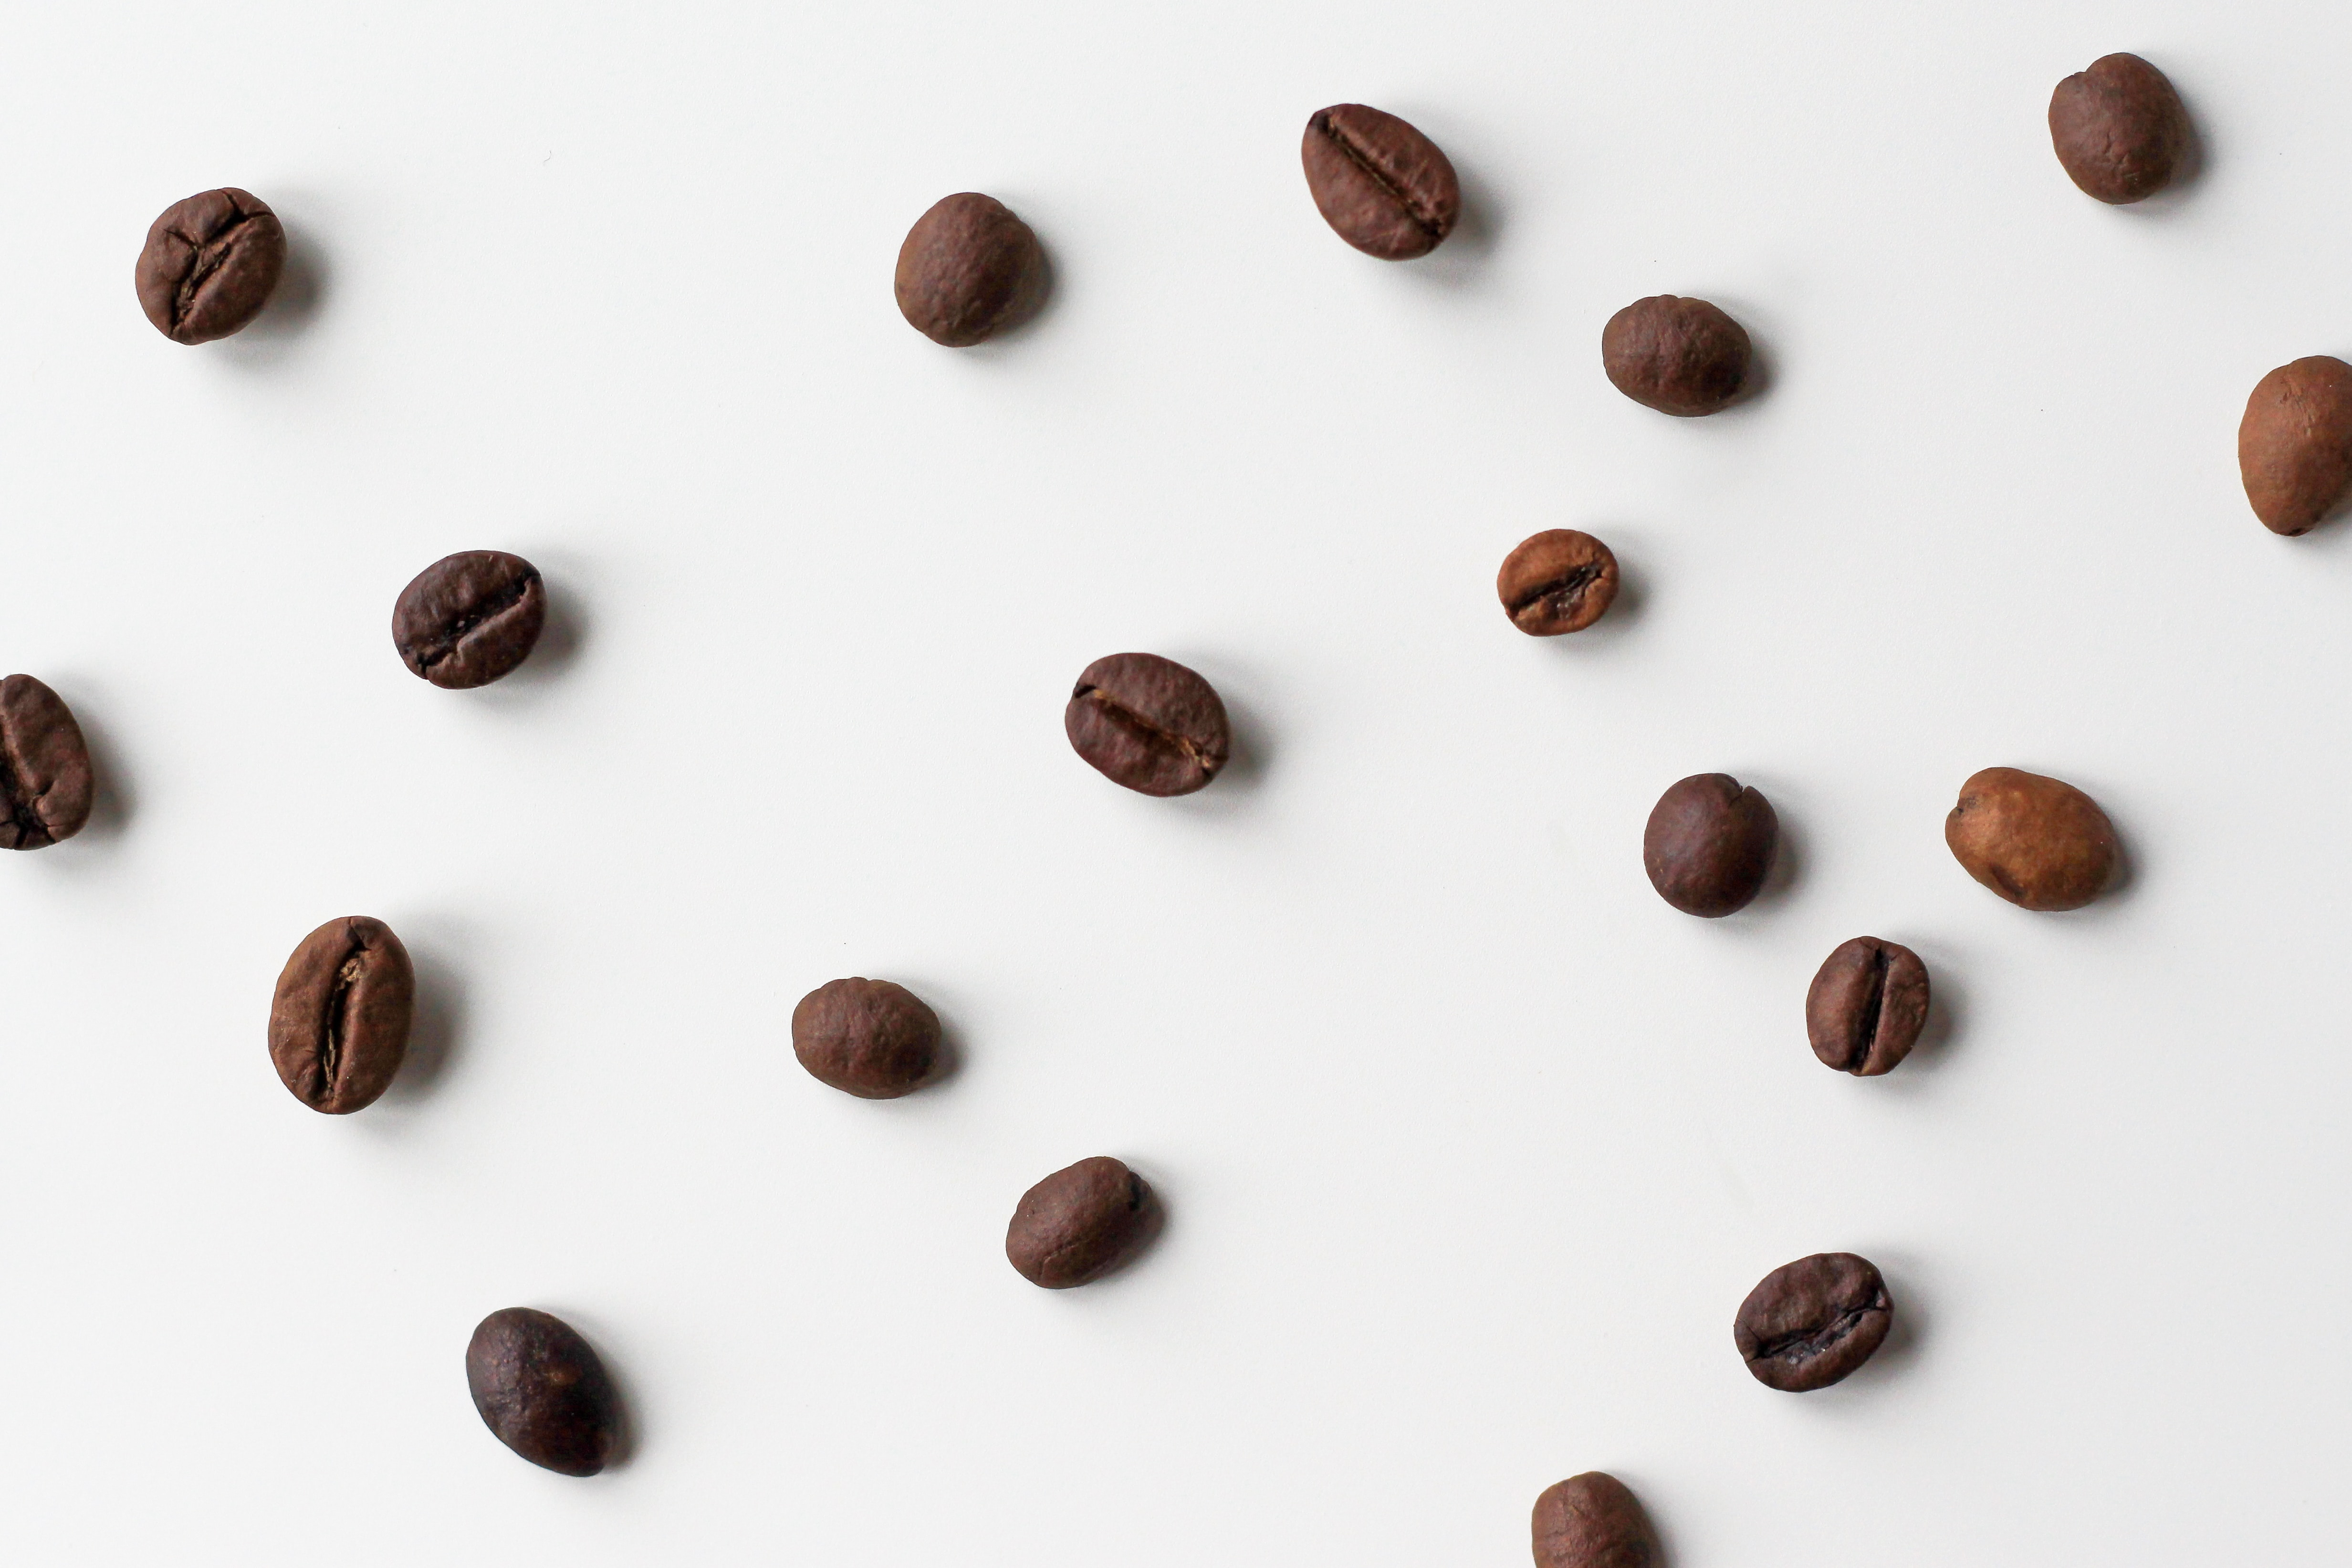 Does Caffeine Help Modulate and Reduce Pain?